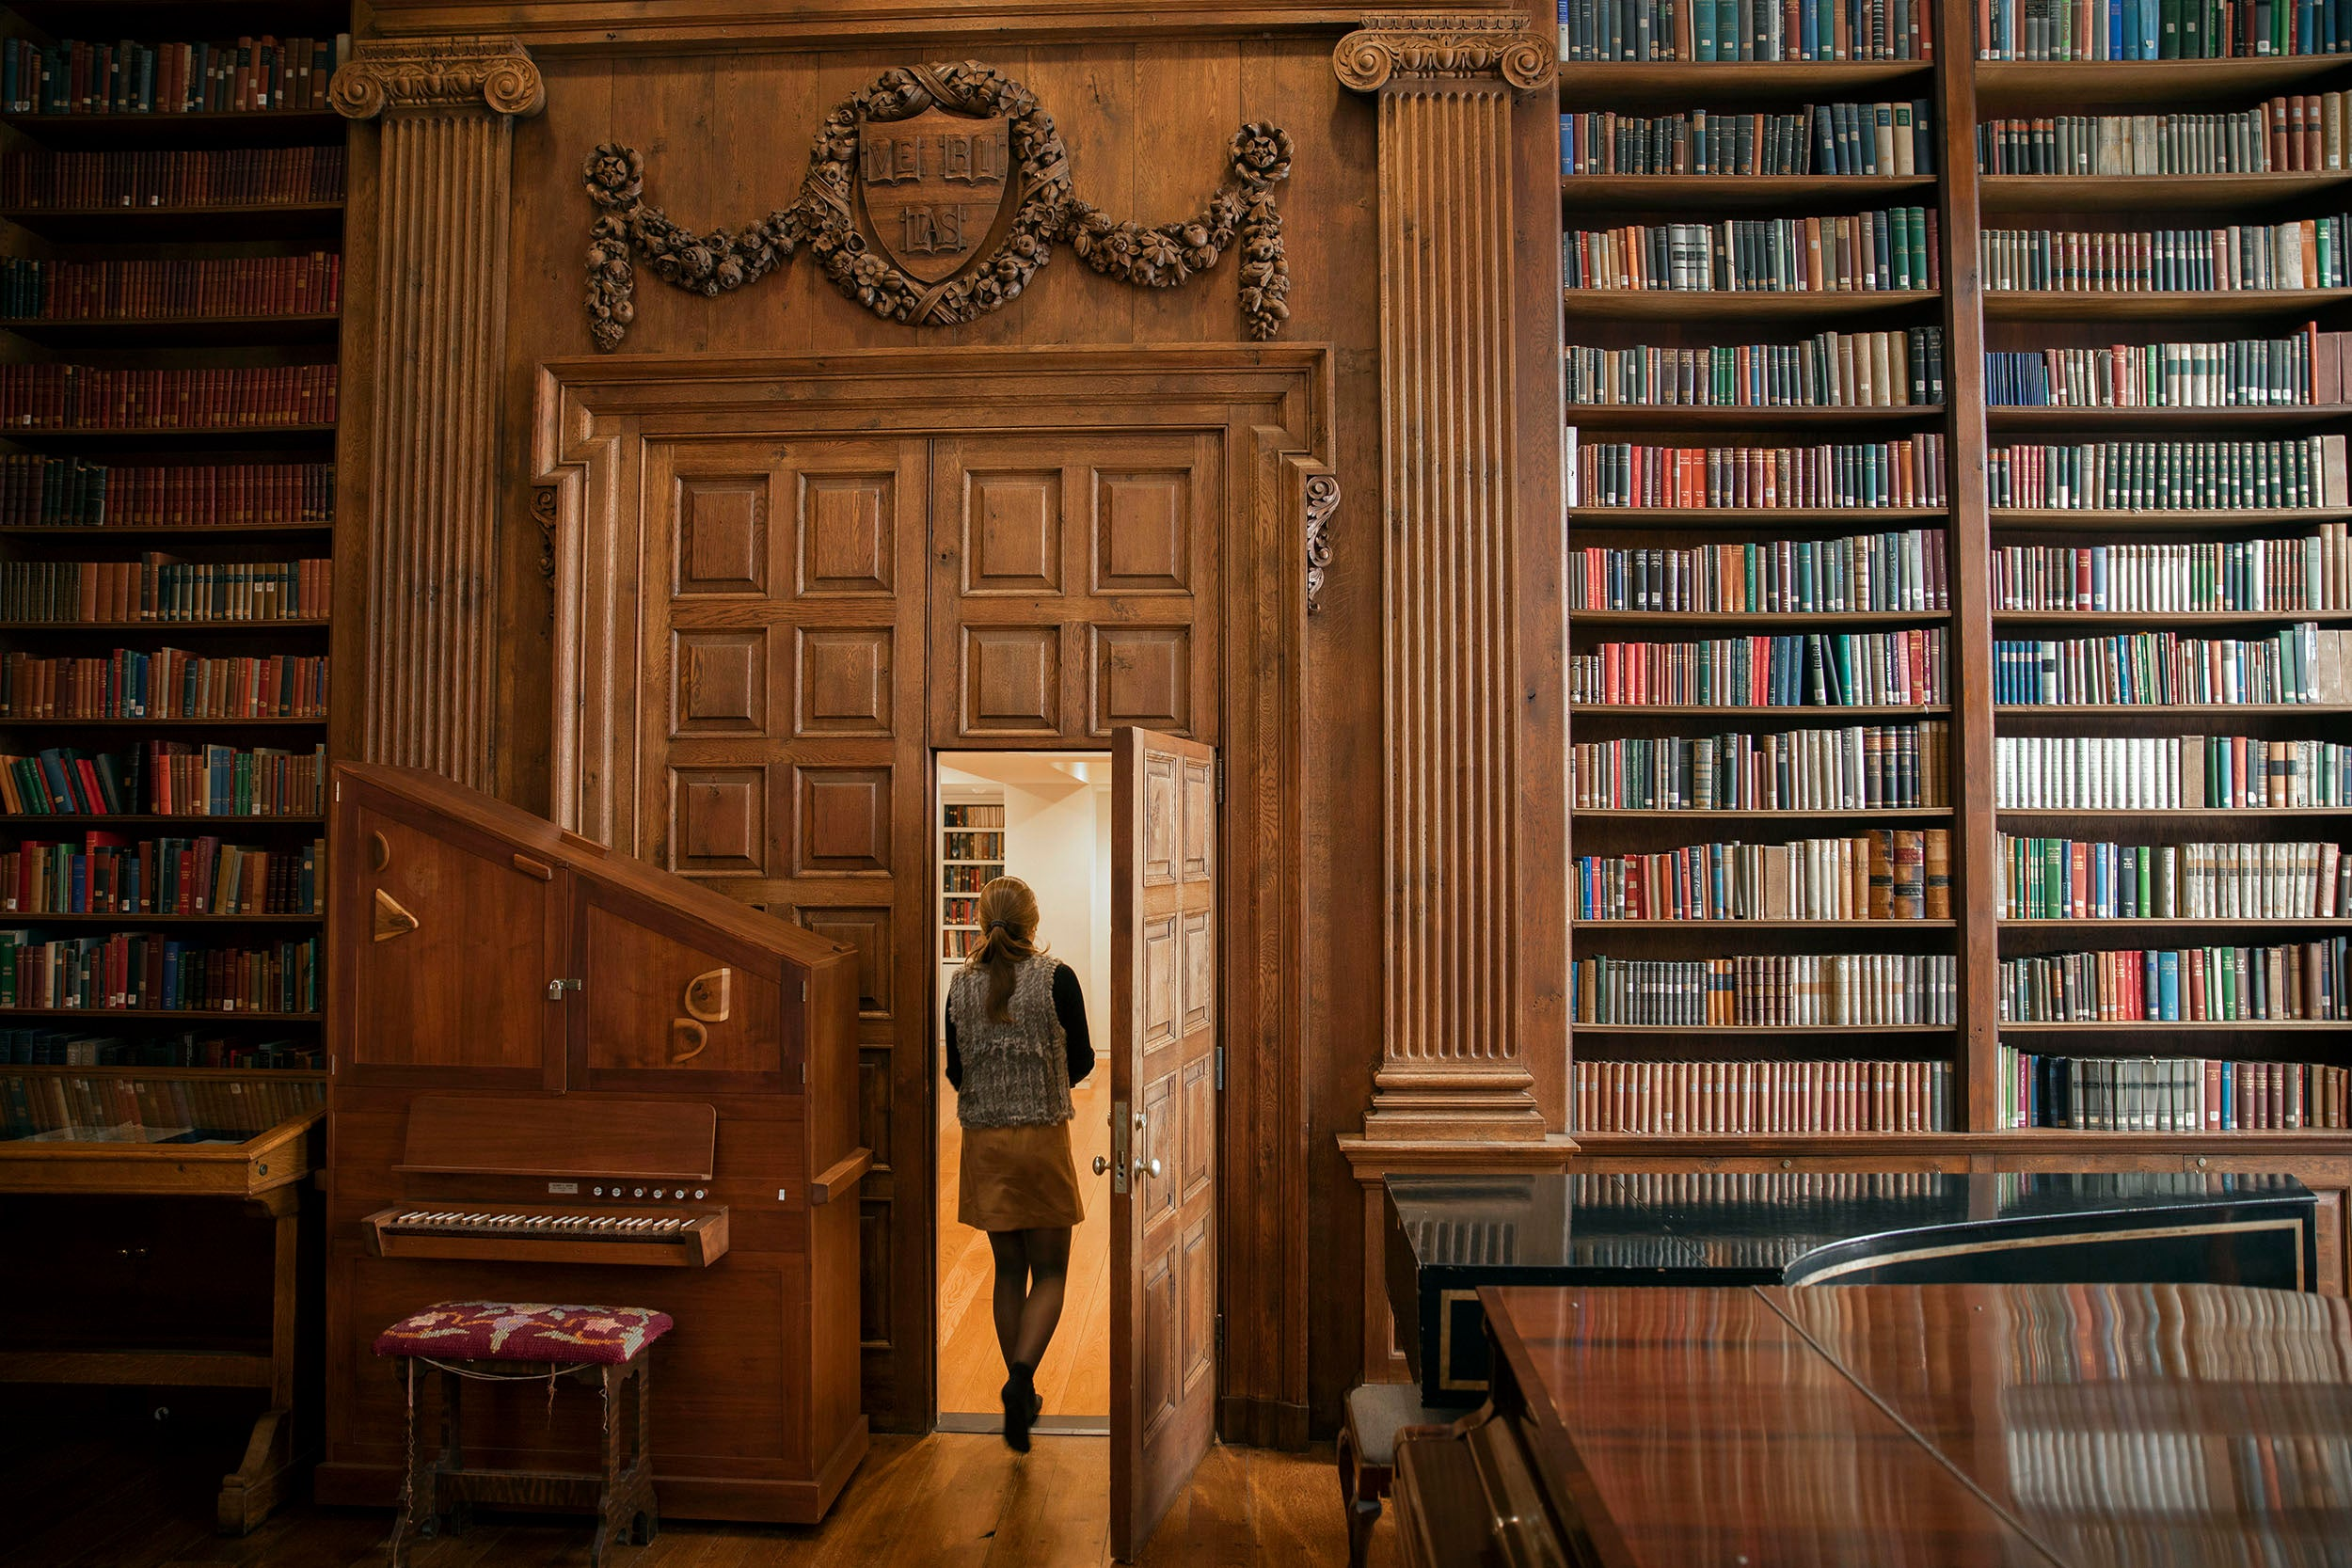 The Dunster House library features a rainbow of classics on its bookshelves, framing a student during Winter Reading Period.